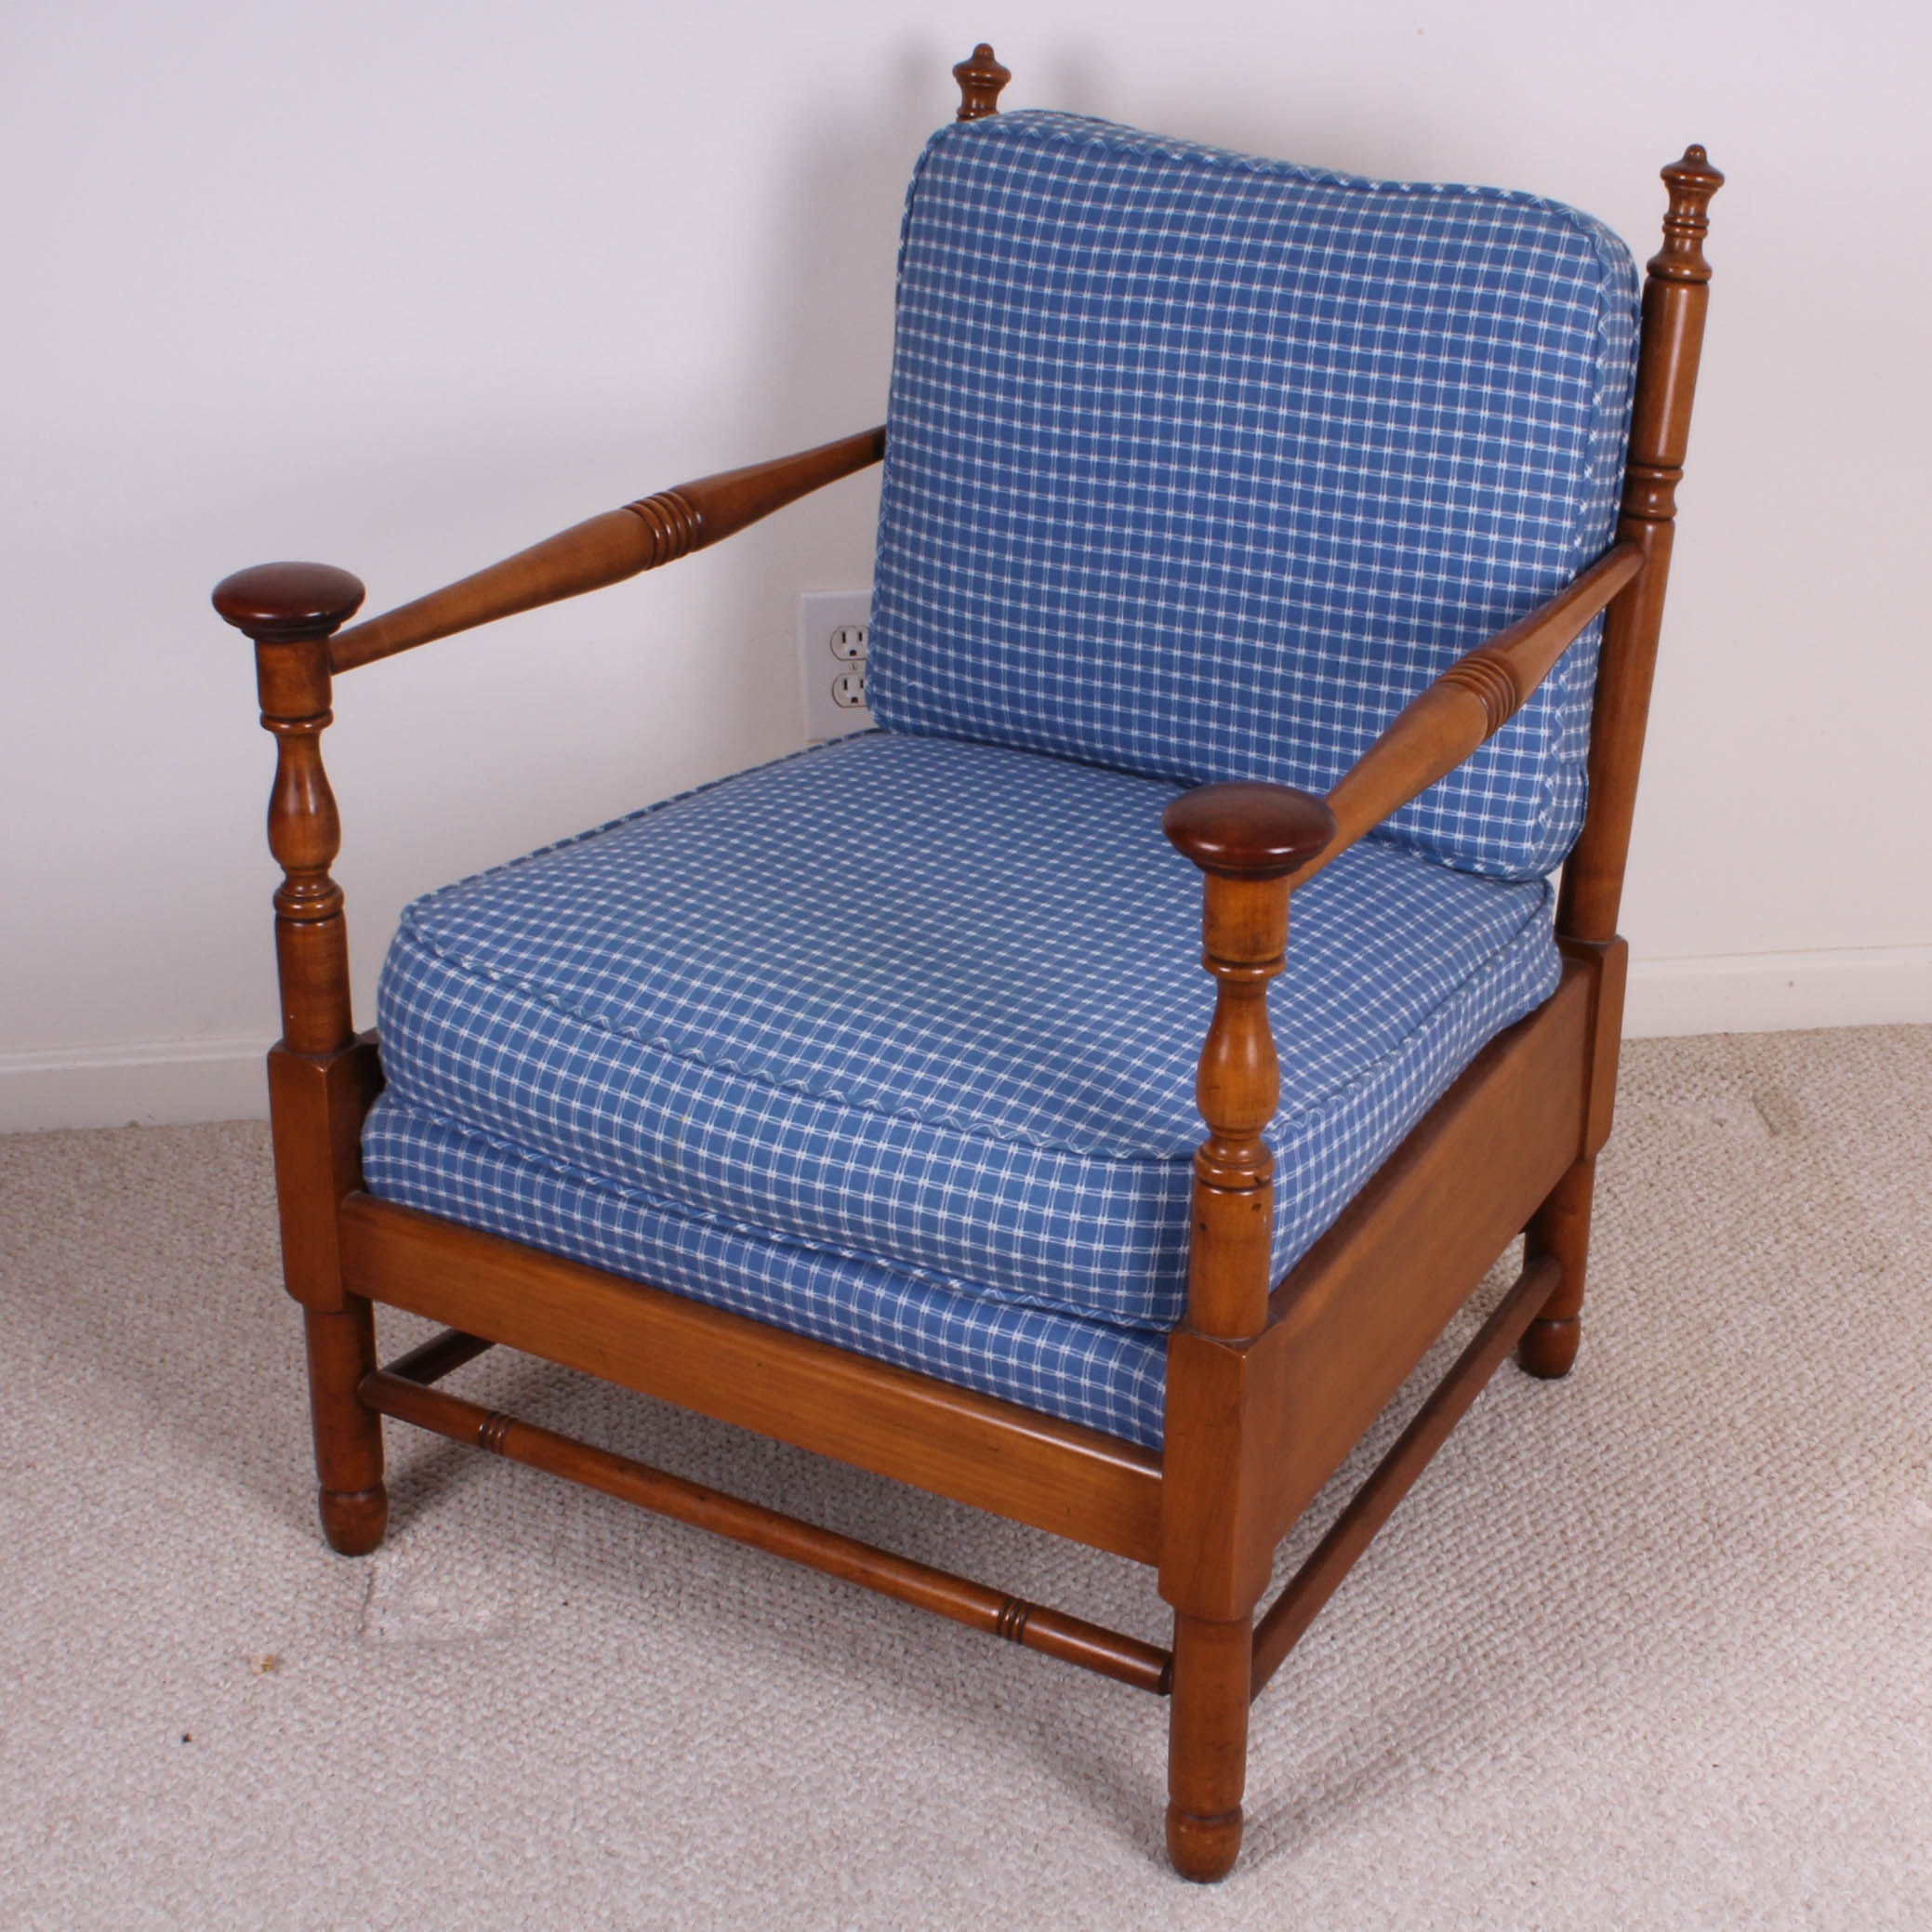 Vintage Wooden Armchair With Cushions ...